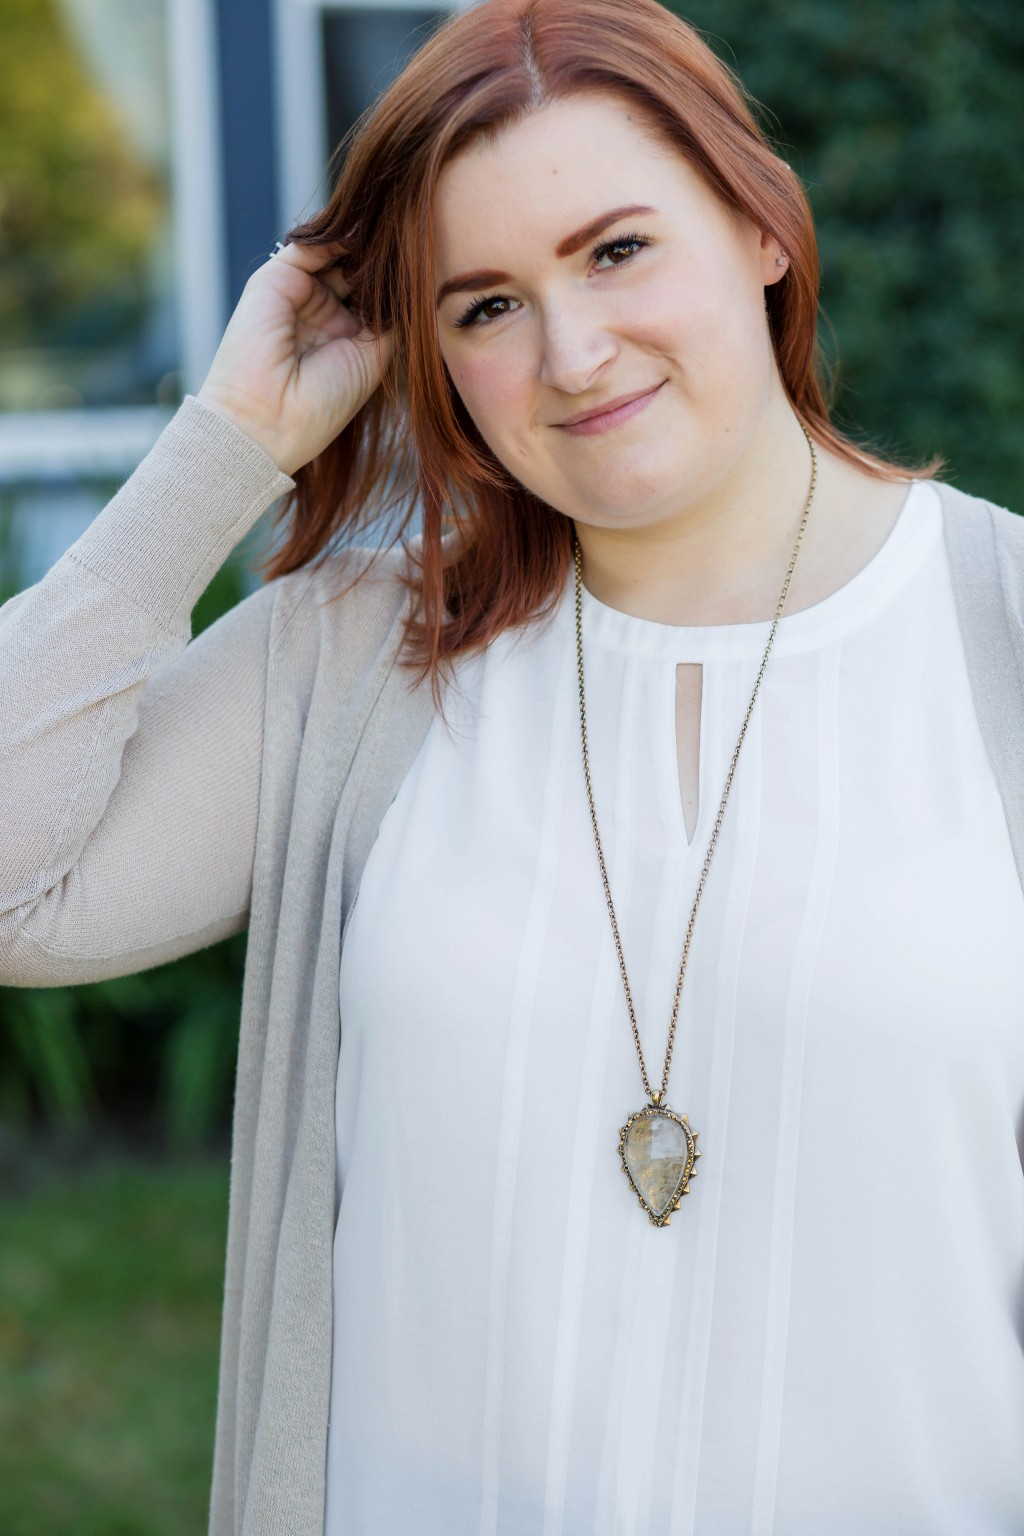 3-kate-retherford-redhead-style-blogger